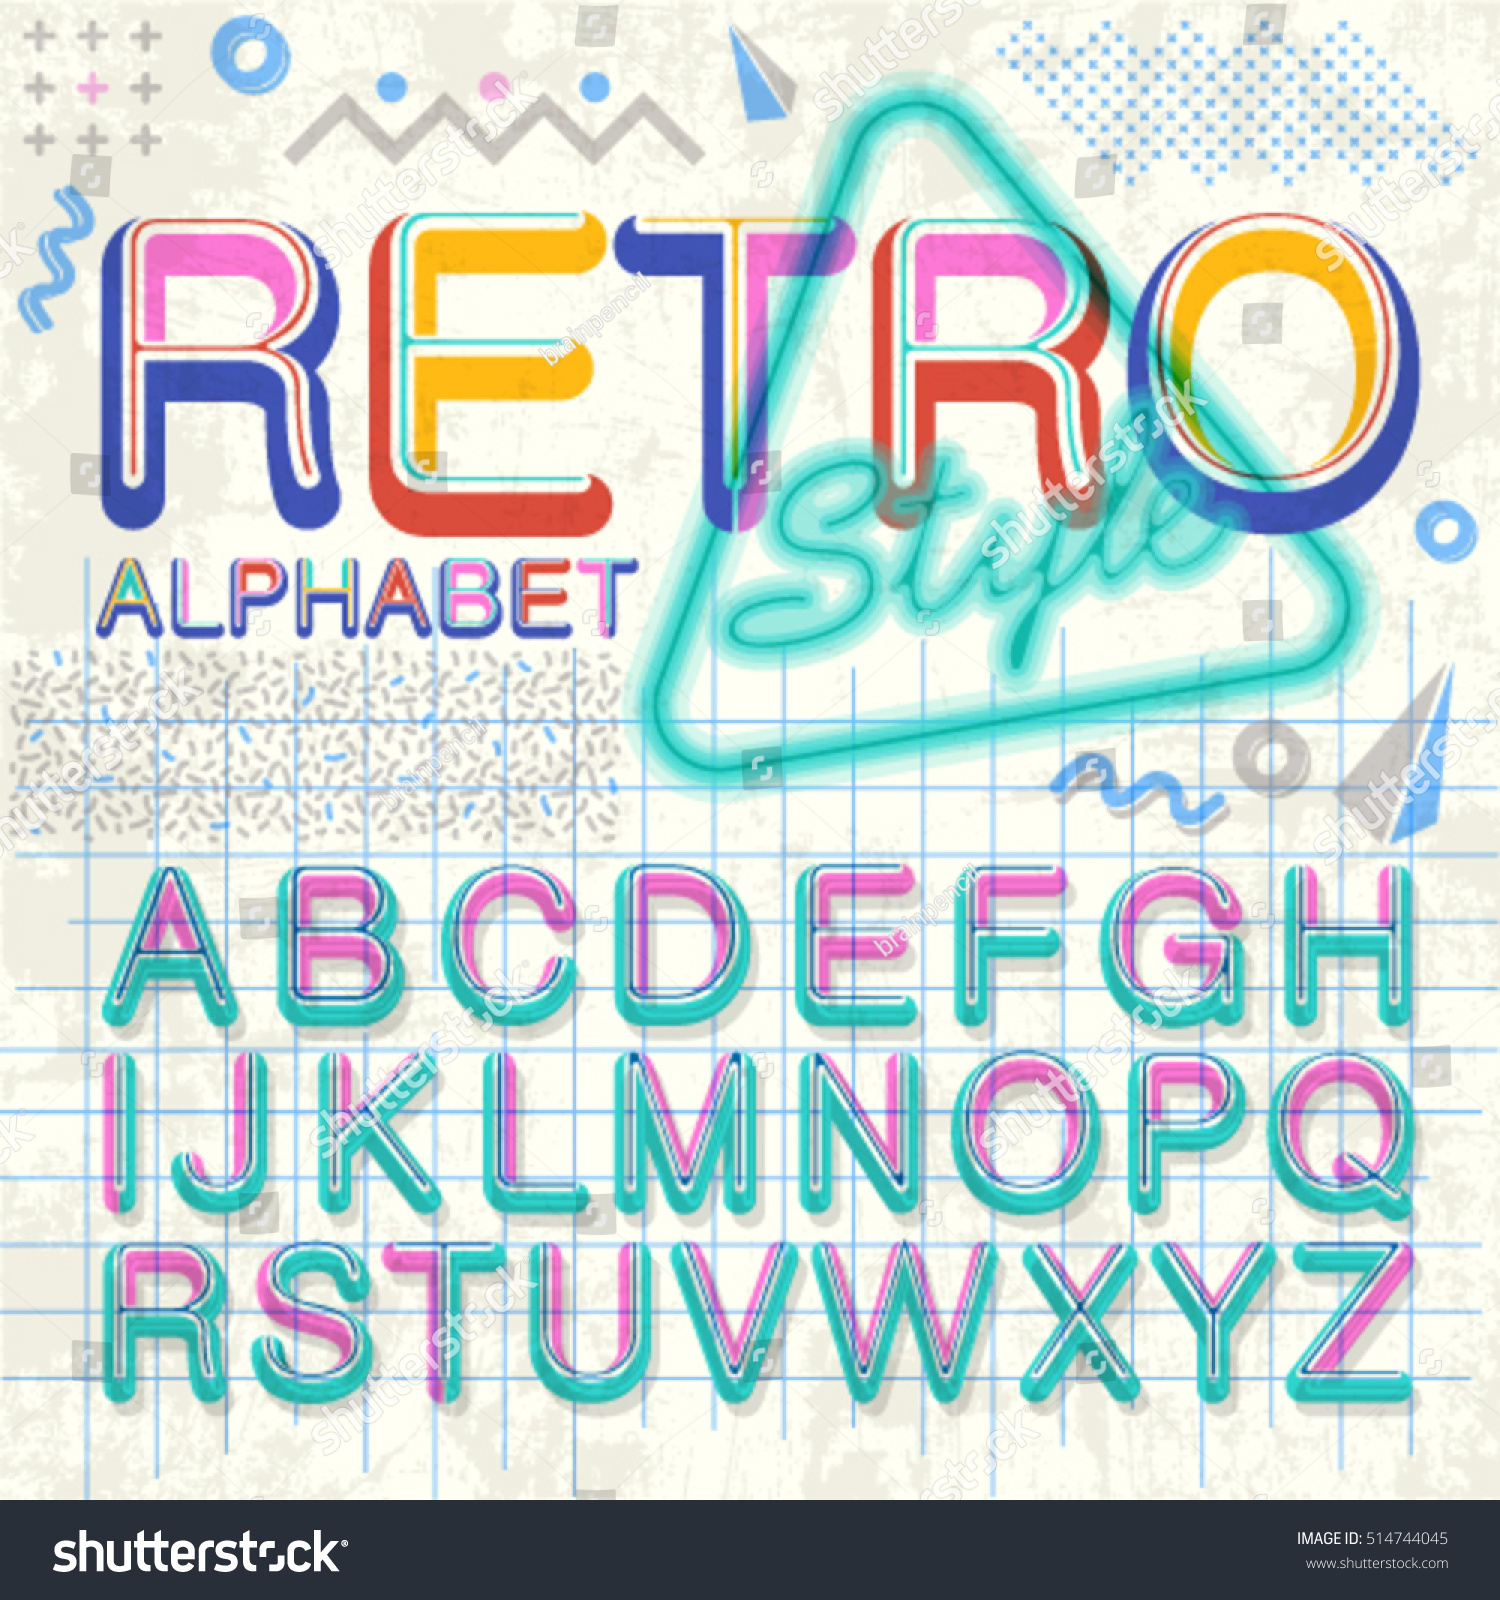 90s poster design - Vintage Alphabet Vector 80 S 90 S Old Style Graphic Poster Set